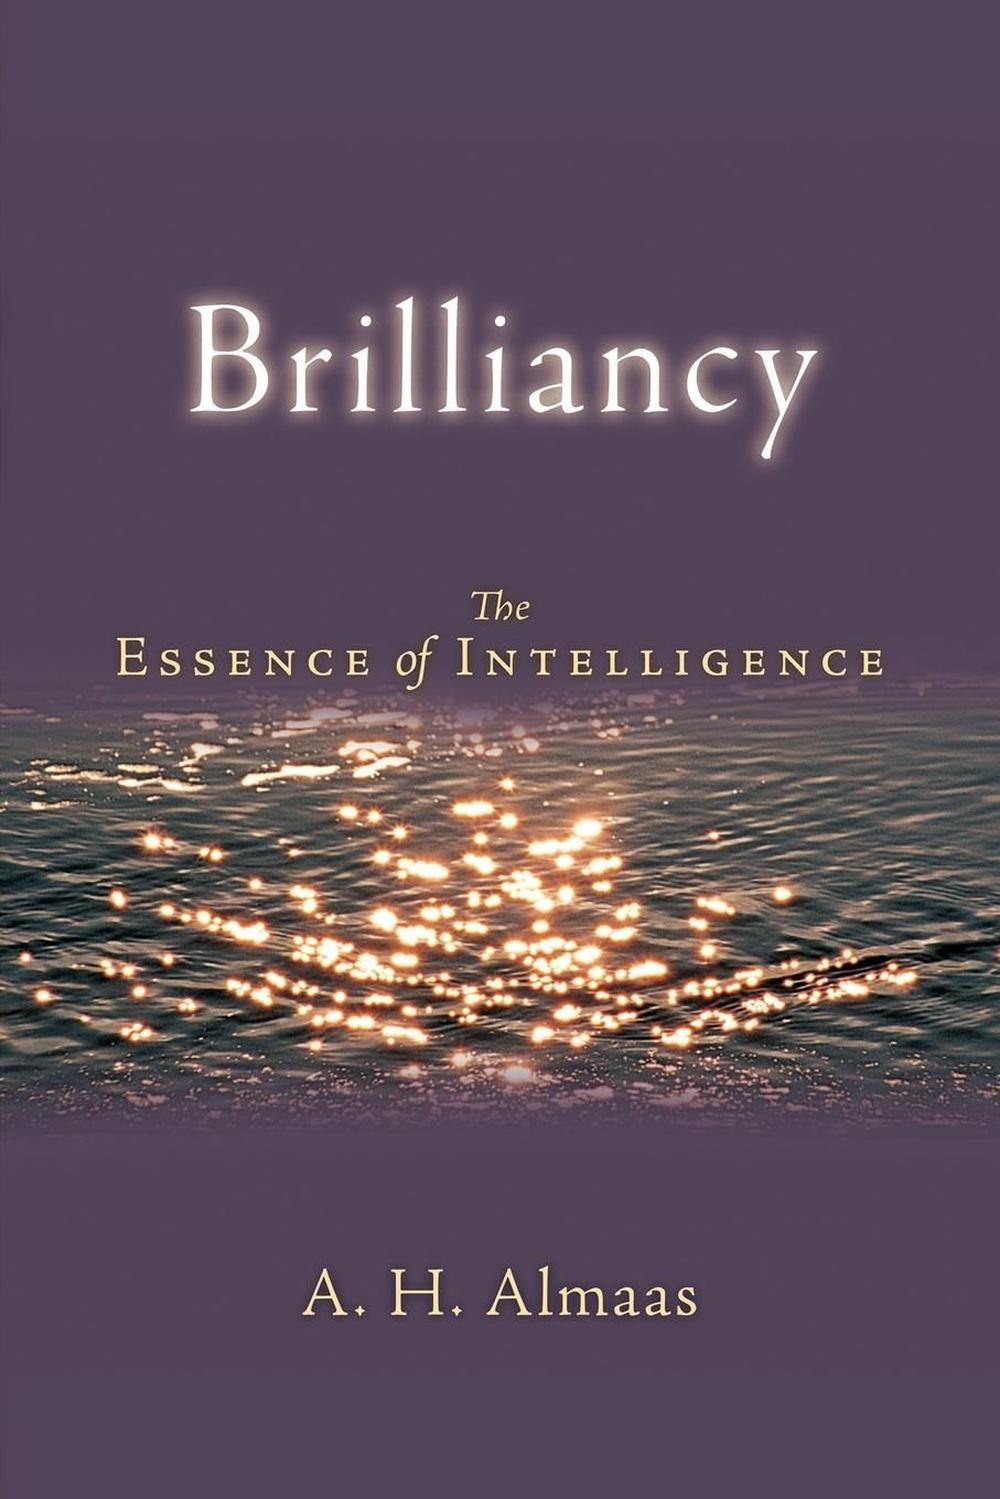 Brilliancy: The Essence of Intelligence